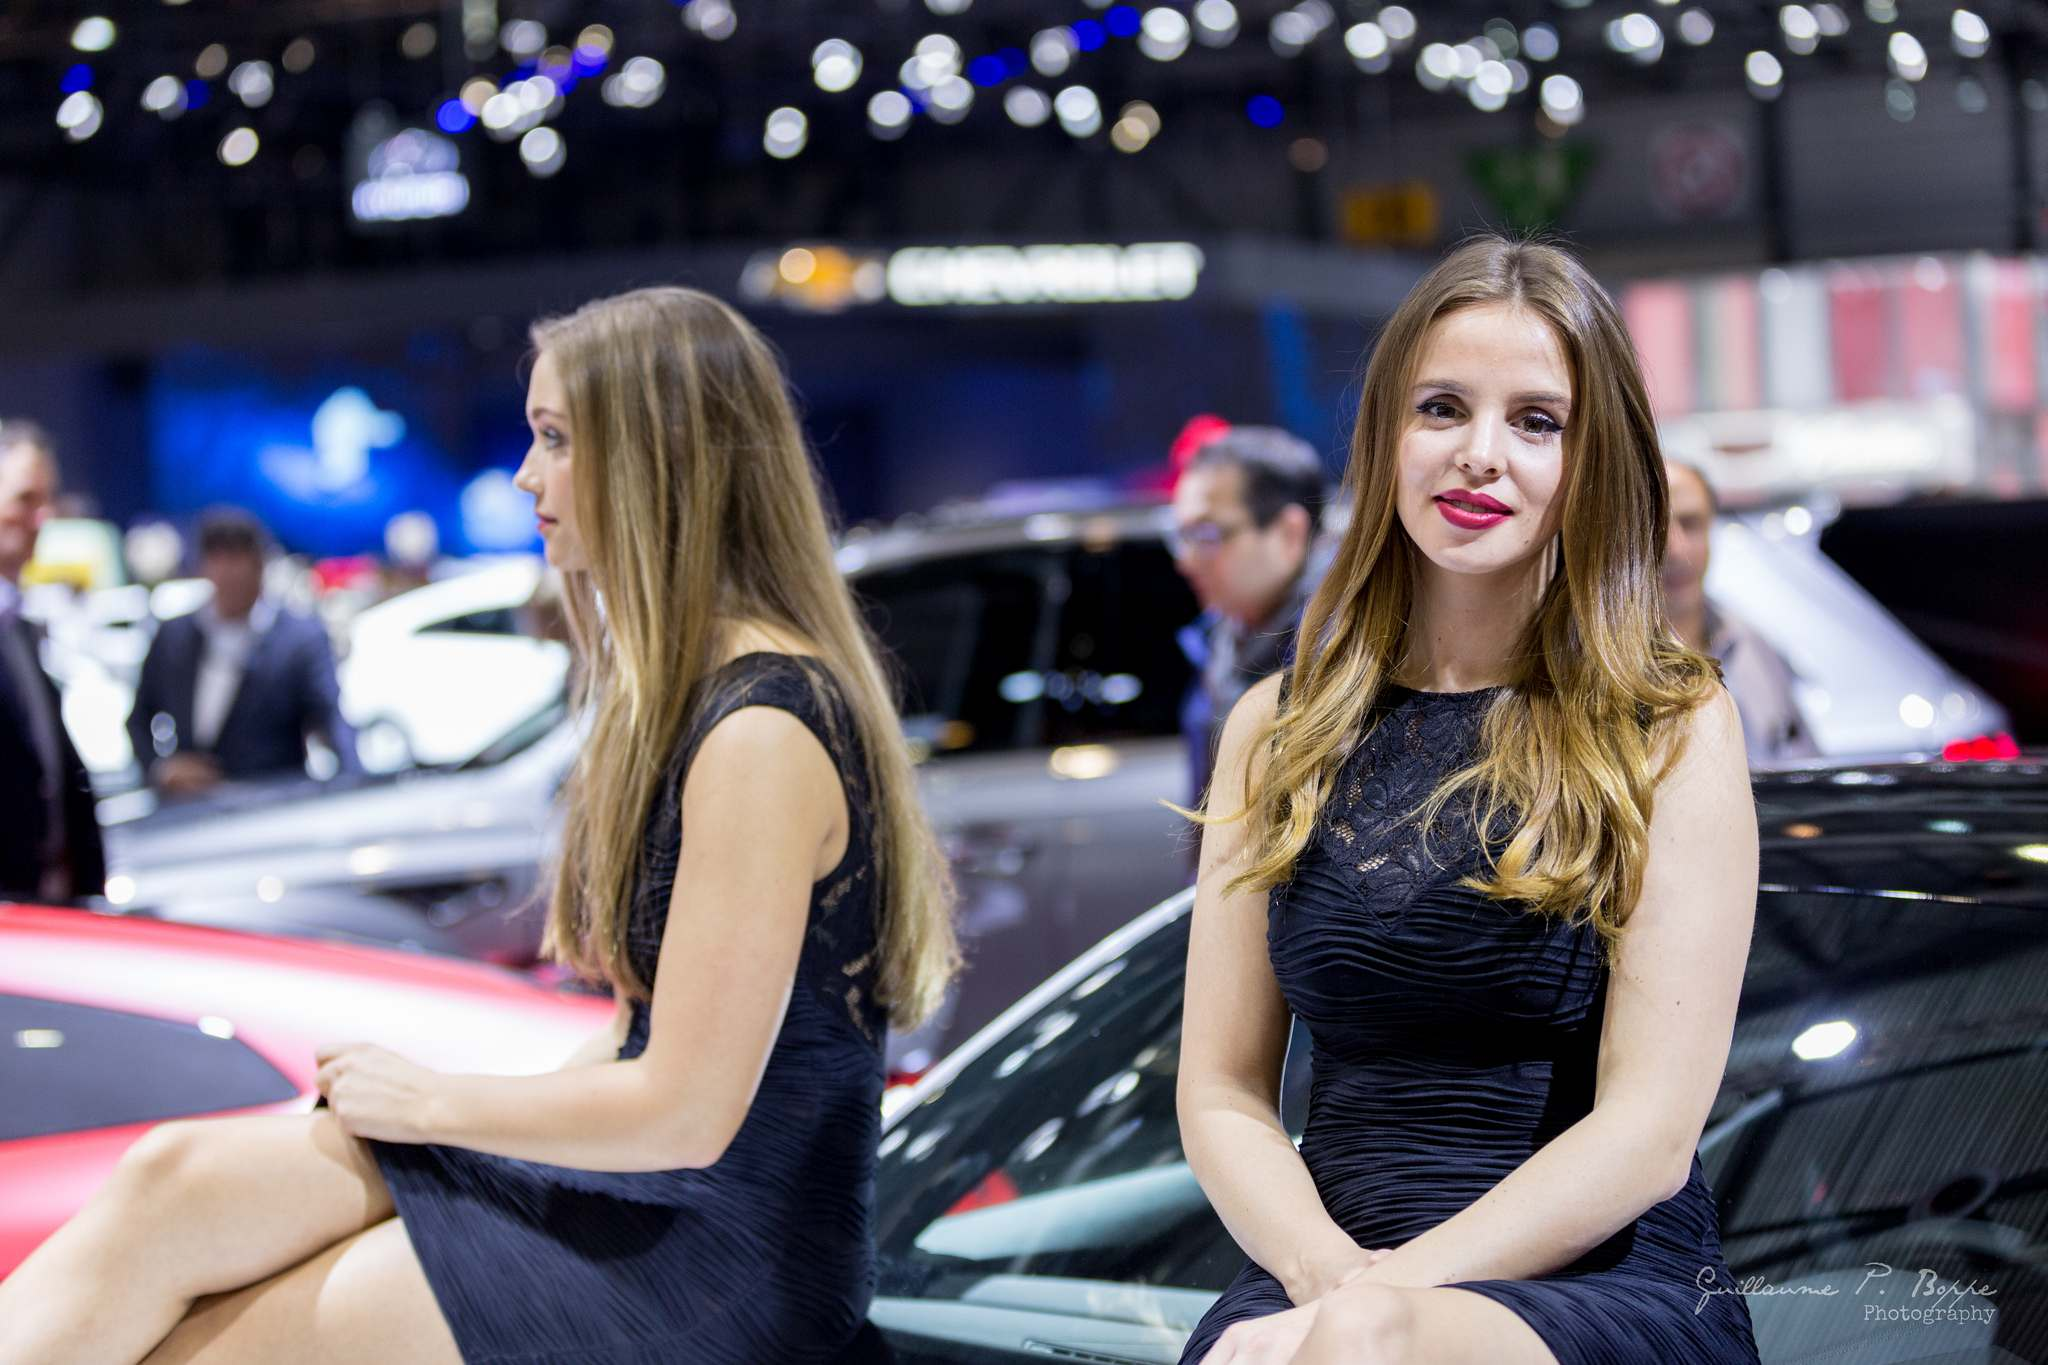 sexy hostess1 Beauty at Geneva International Motor Show 2017